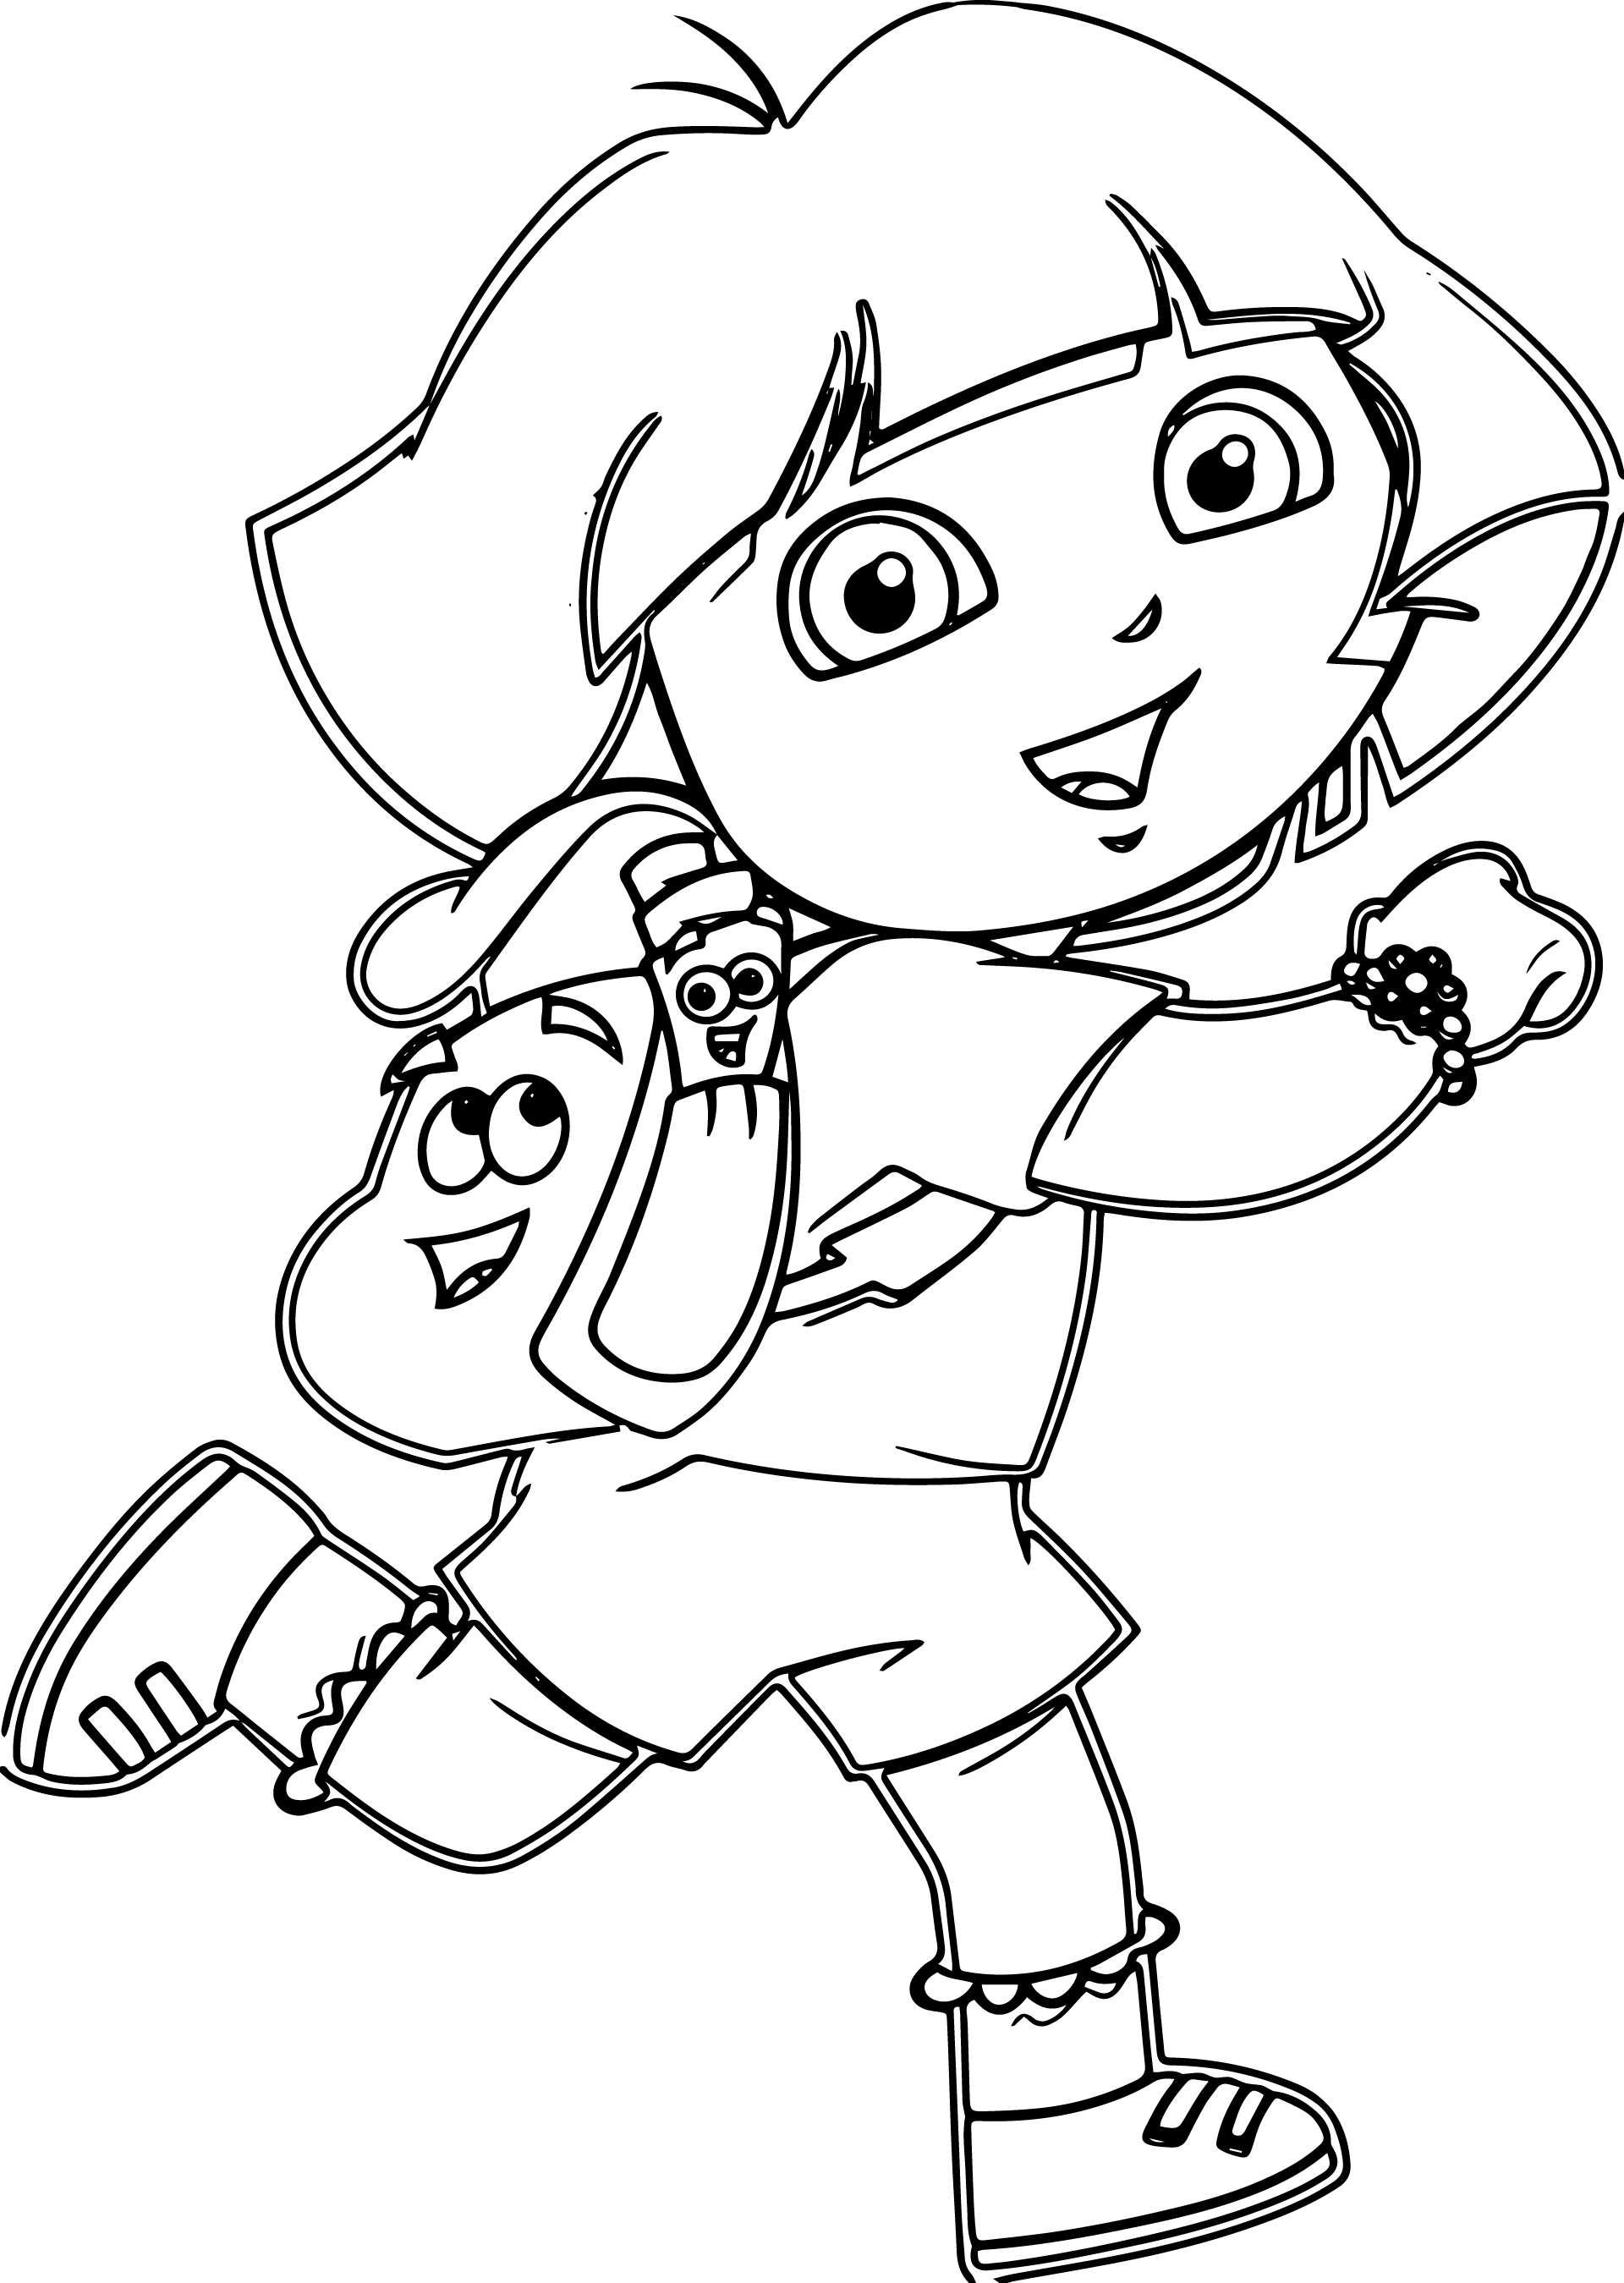 dora coloring picture dora drawing pictures at getdrawings free download picture dora coloring